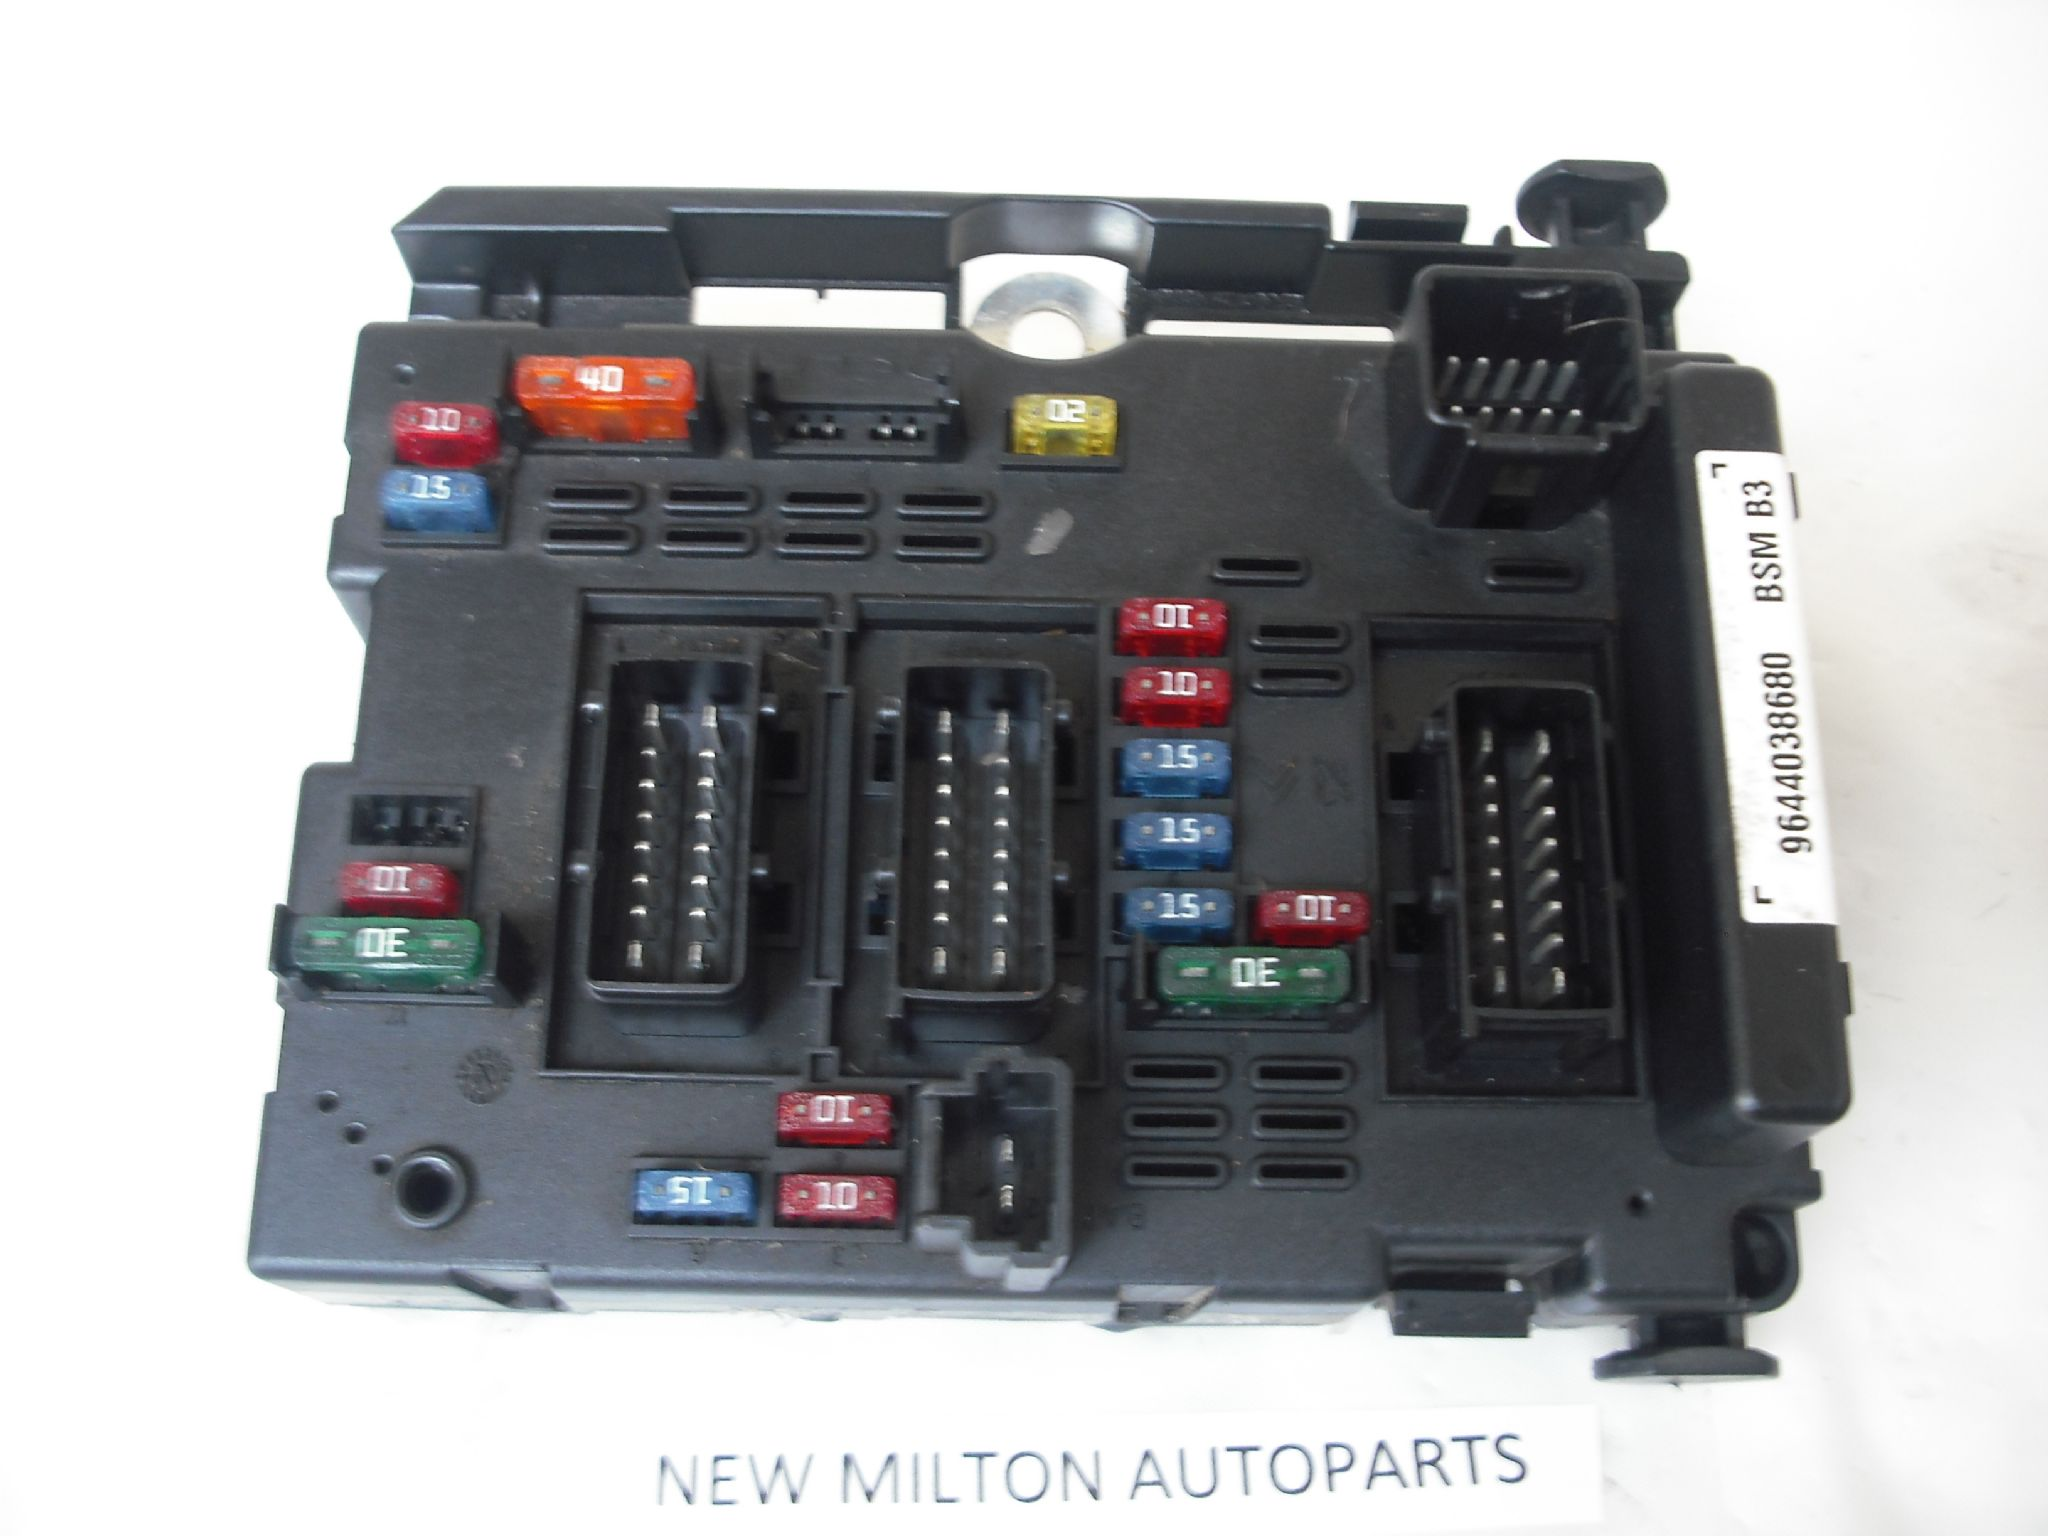 peugeot 307 partner citroen berlingo fuse box controller 9644038680 bsm b3 ........................sorry out of stock 5843 p peugeot 307 partner citroen berlingo fuse box controller citroen berlingo 2003 fuse box at alyssarenee.co